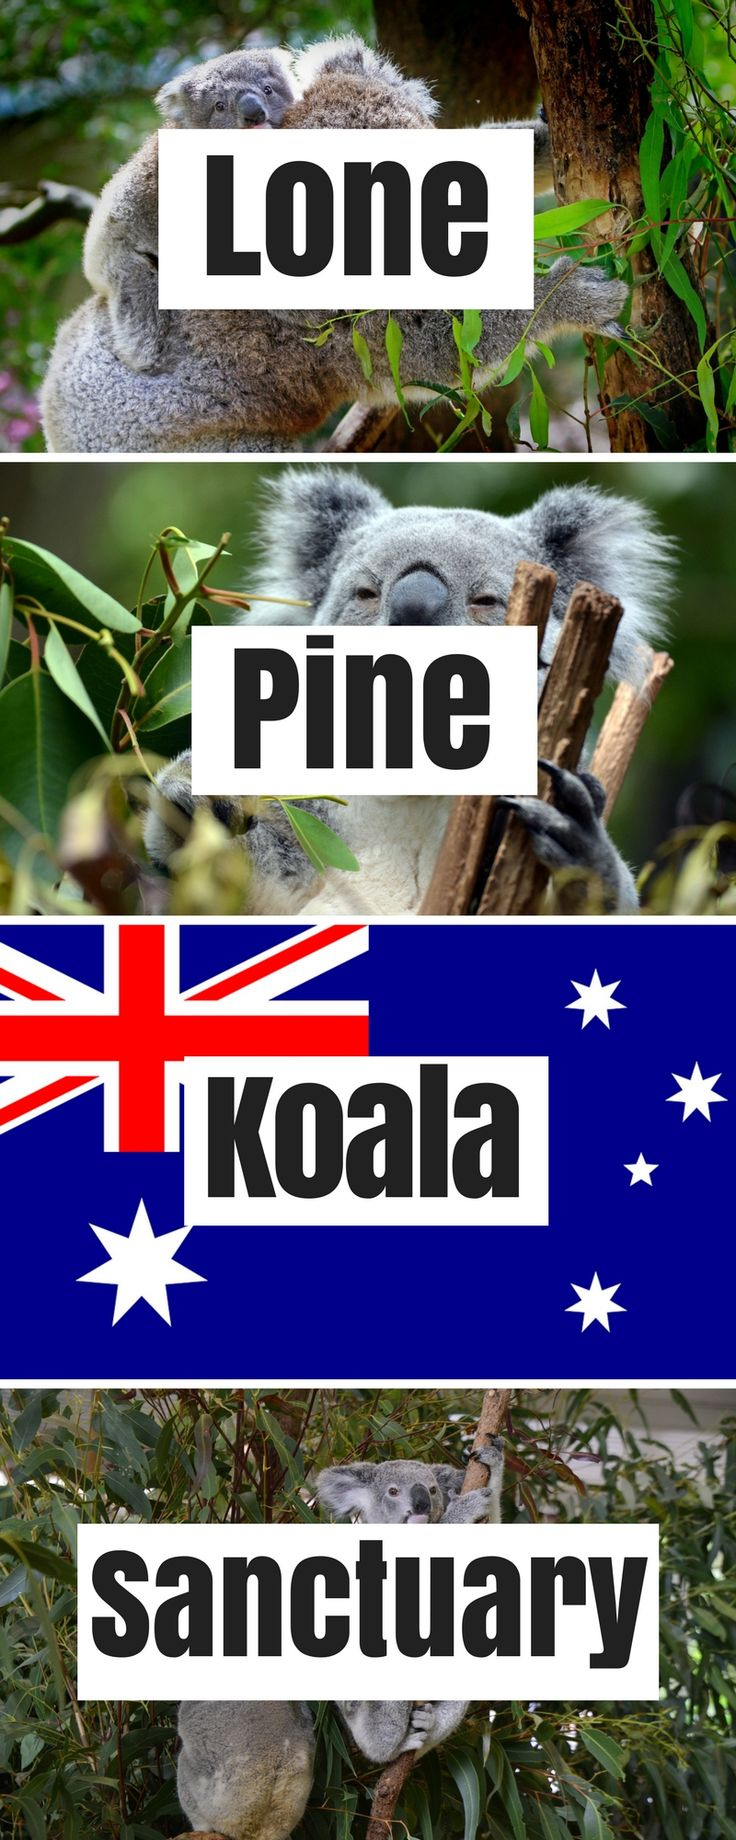 Australia Travel: Lone Pine Koala Sanctuary near Brisbane, Queensland. One of the few places where you can hold a koala and take a photo. Other Australian wildlife (e.g. kangaroos) can be seen as well.